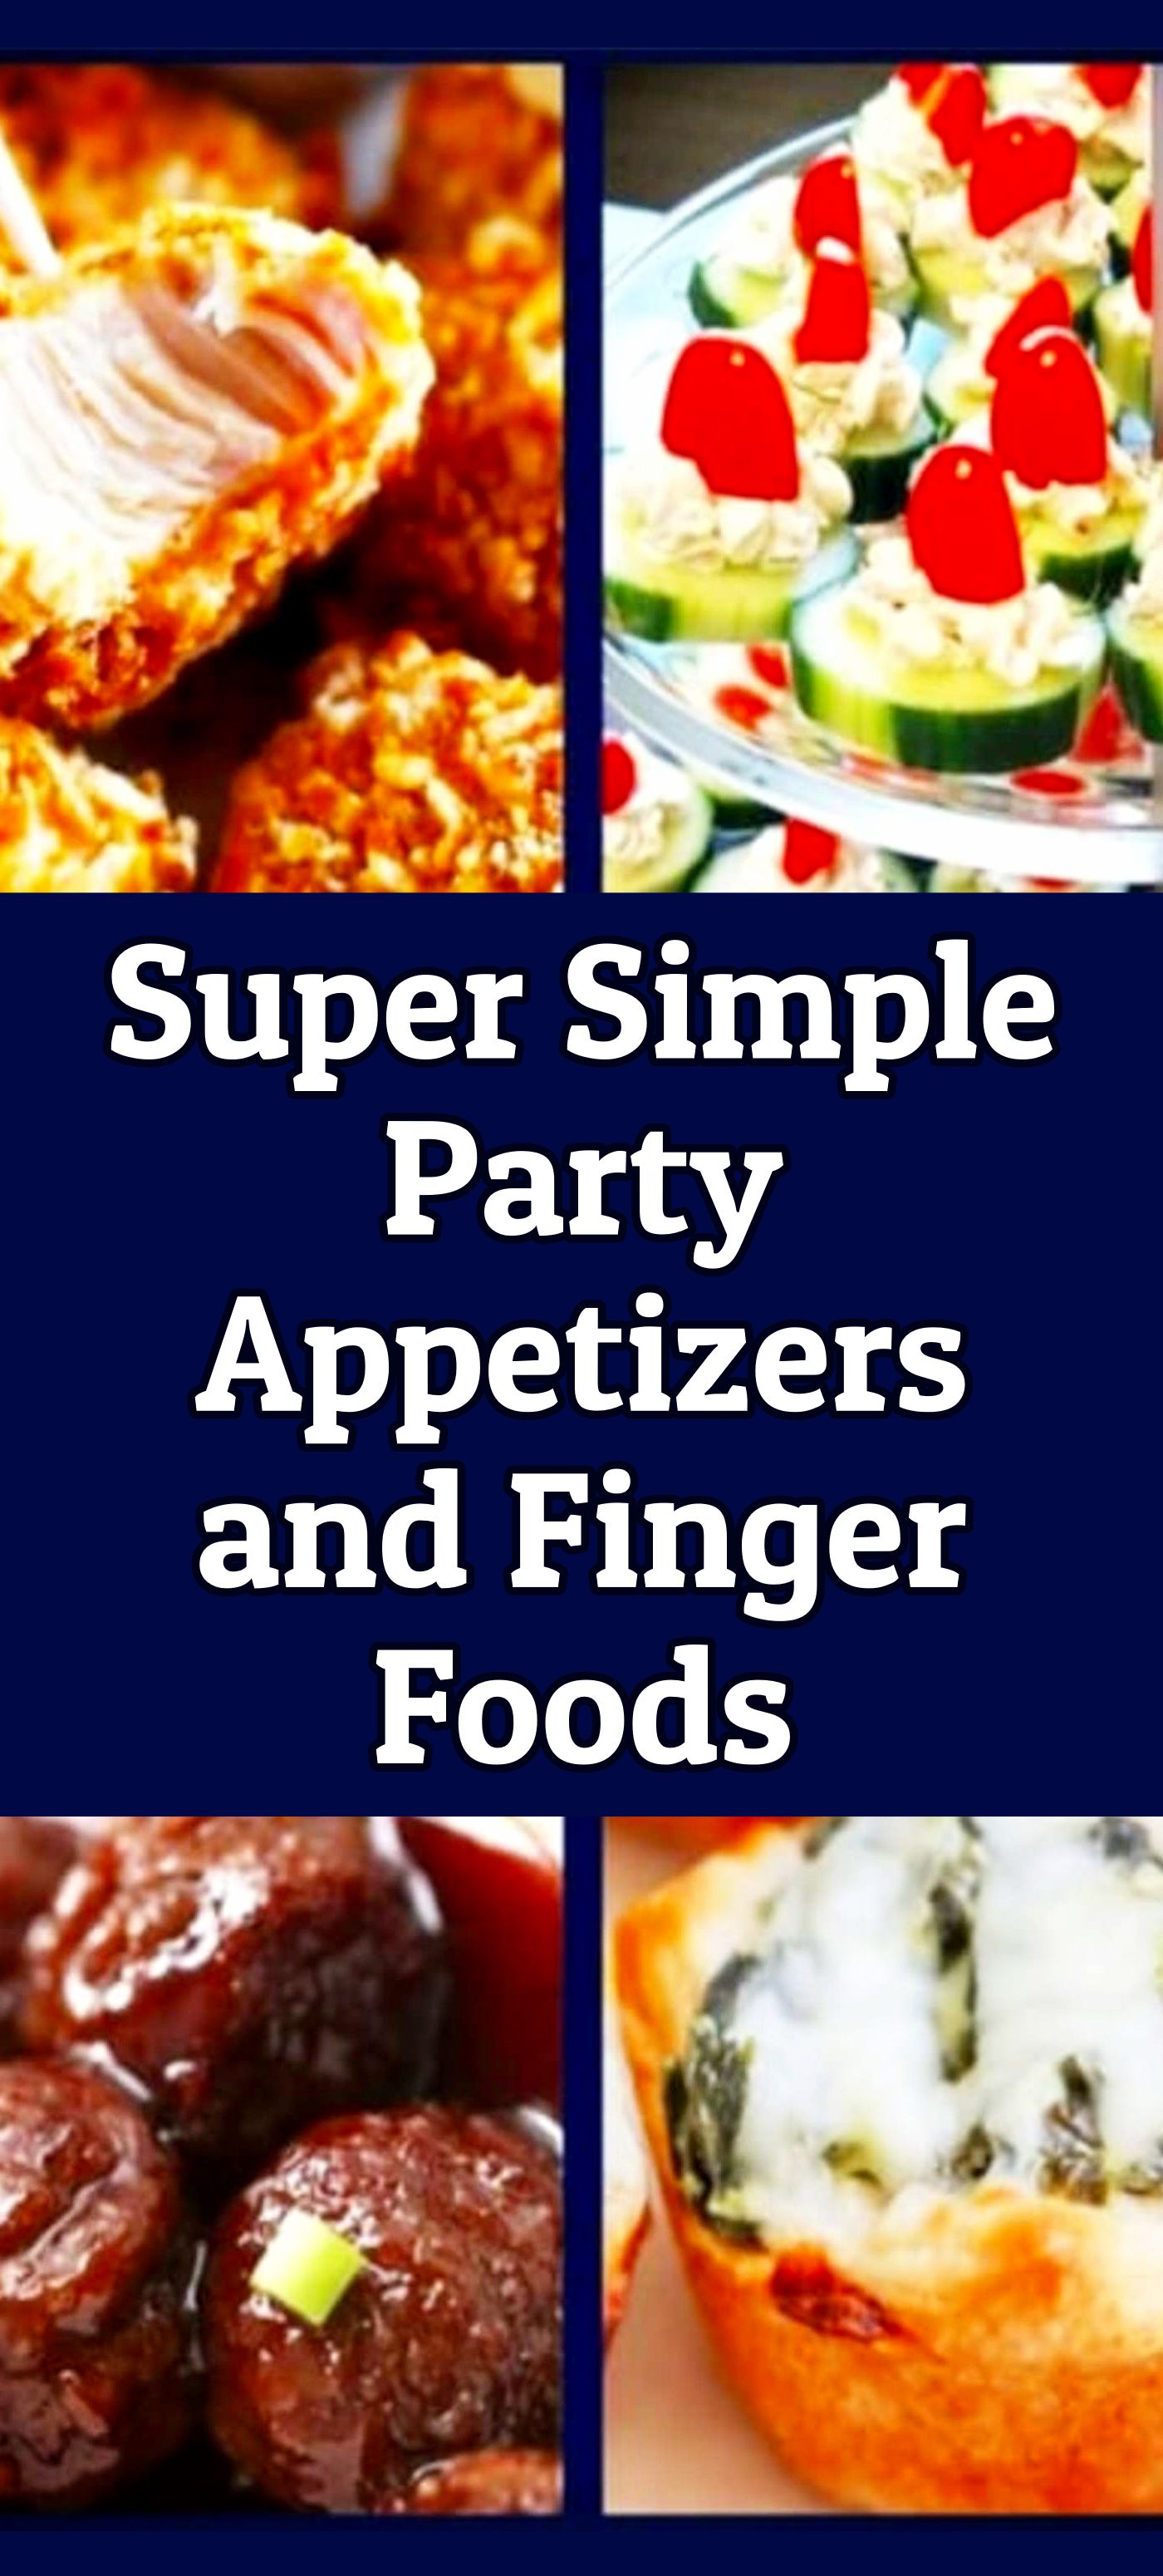 Super Simple Party Appetizers and Finger Foods